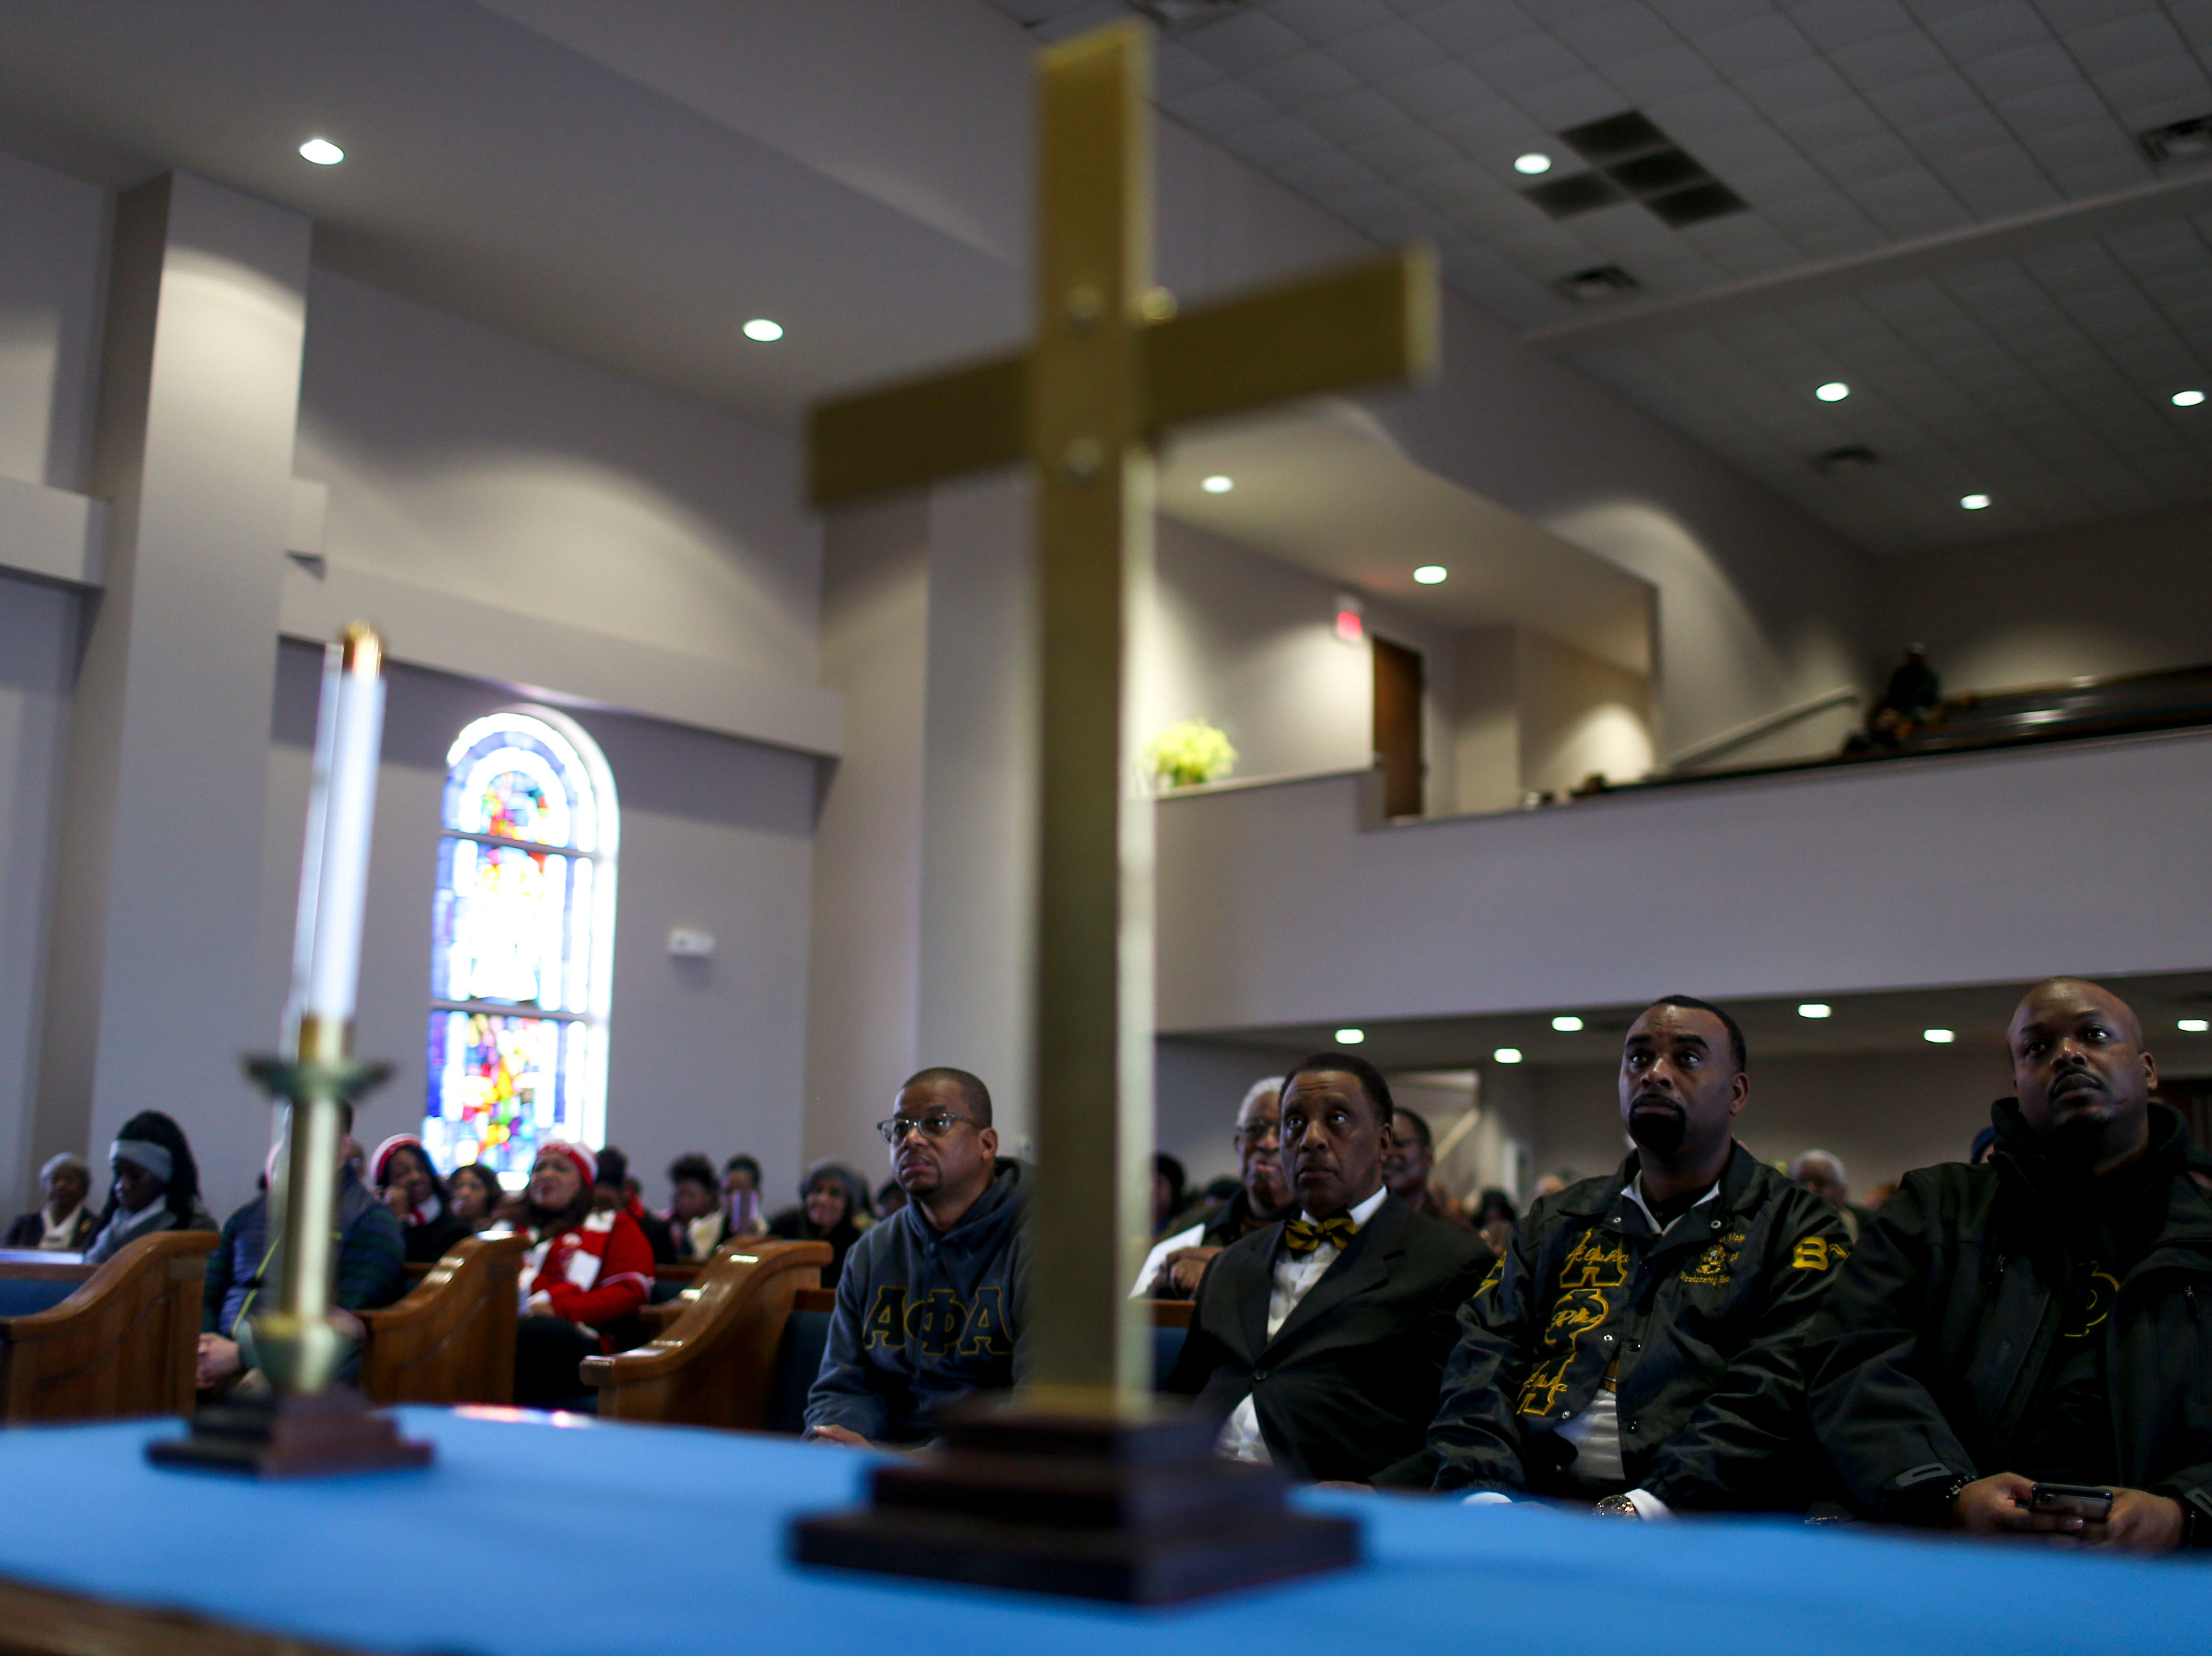 Audience members listen intently to speakers during a service held for Martin Luther King Jr. Day at Mt. Zion Baptist Church in Jackson, Tenn., on Monday, Jan. 21, 2019.